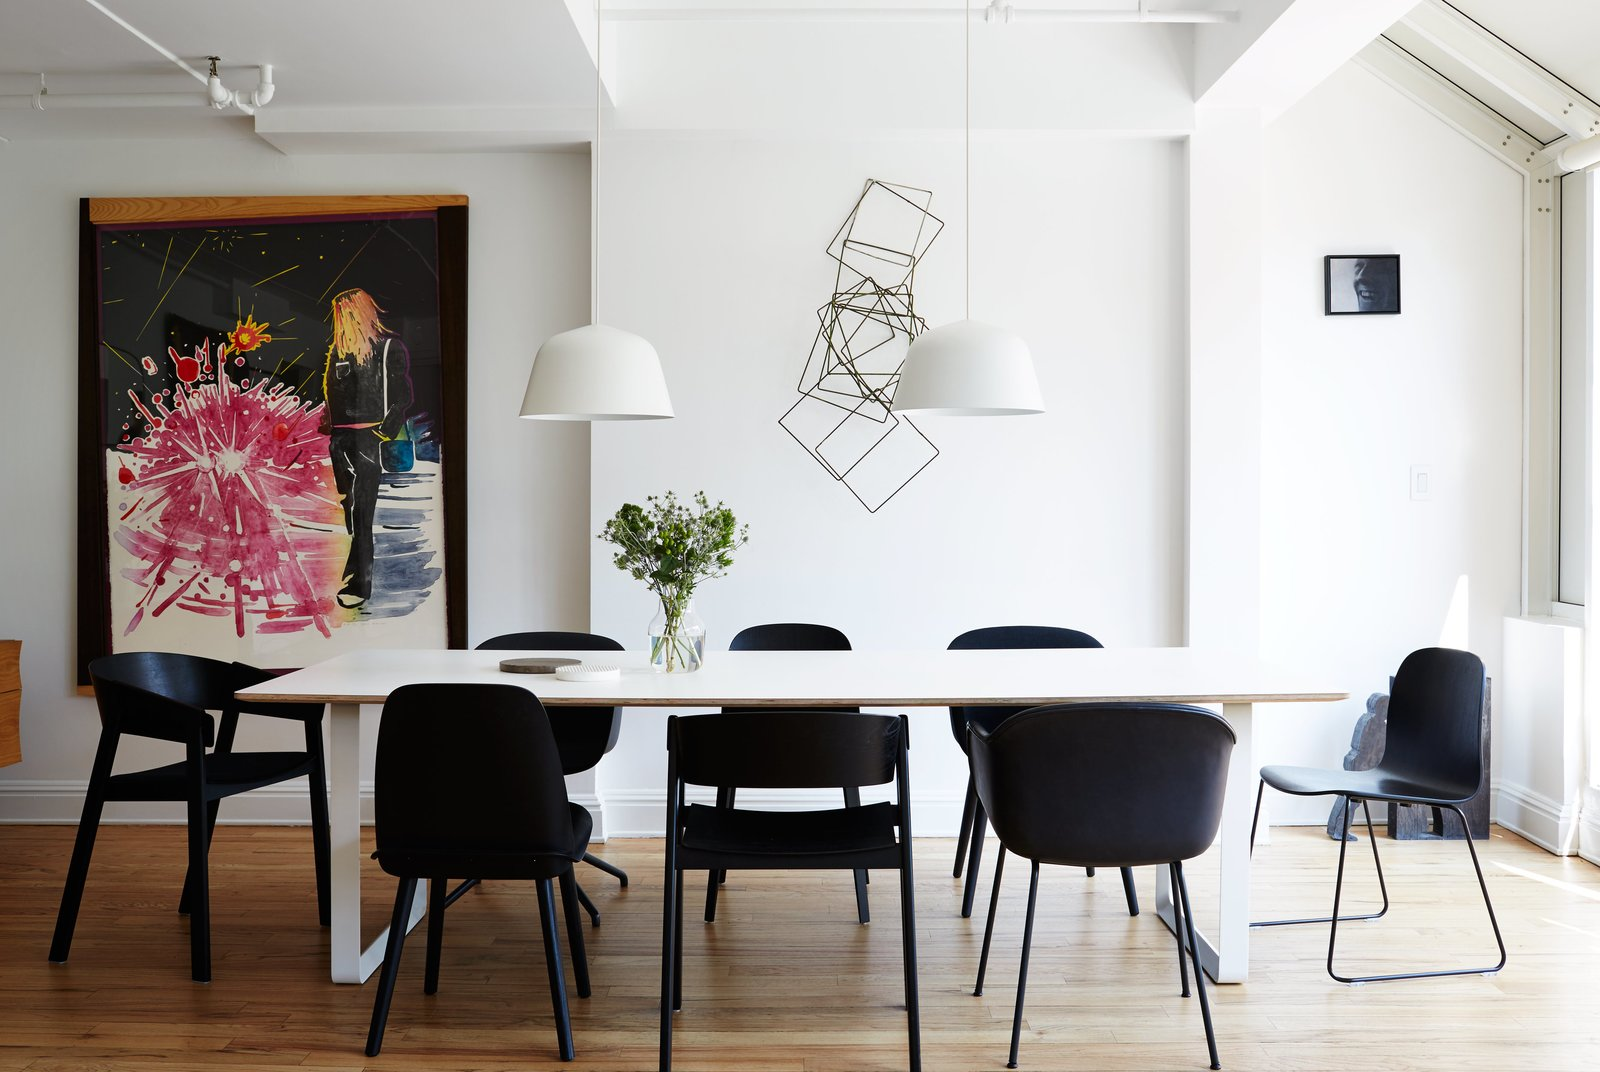 A series of black Muuto chairs—Fiber, Cover, Nerd, and Visu—surrounds a 70/70 table and white Ambit pendants, both by TAF Architects for Muuto. Tagged: Dining Room, Chair, Table, and Pendant Lighting.  Photo 6 of 14 in A Danish Design Kingpin Moves to NYC with a Shipping Container of Furniture in Tow